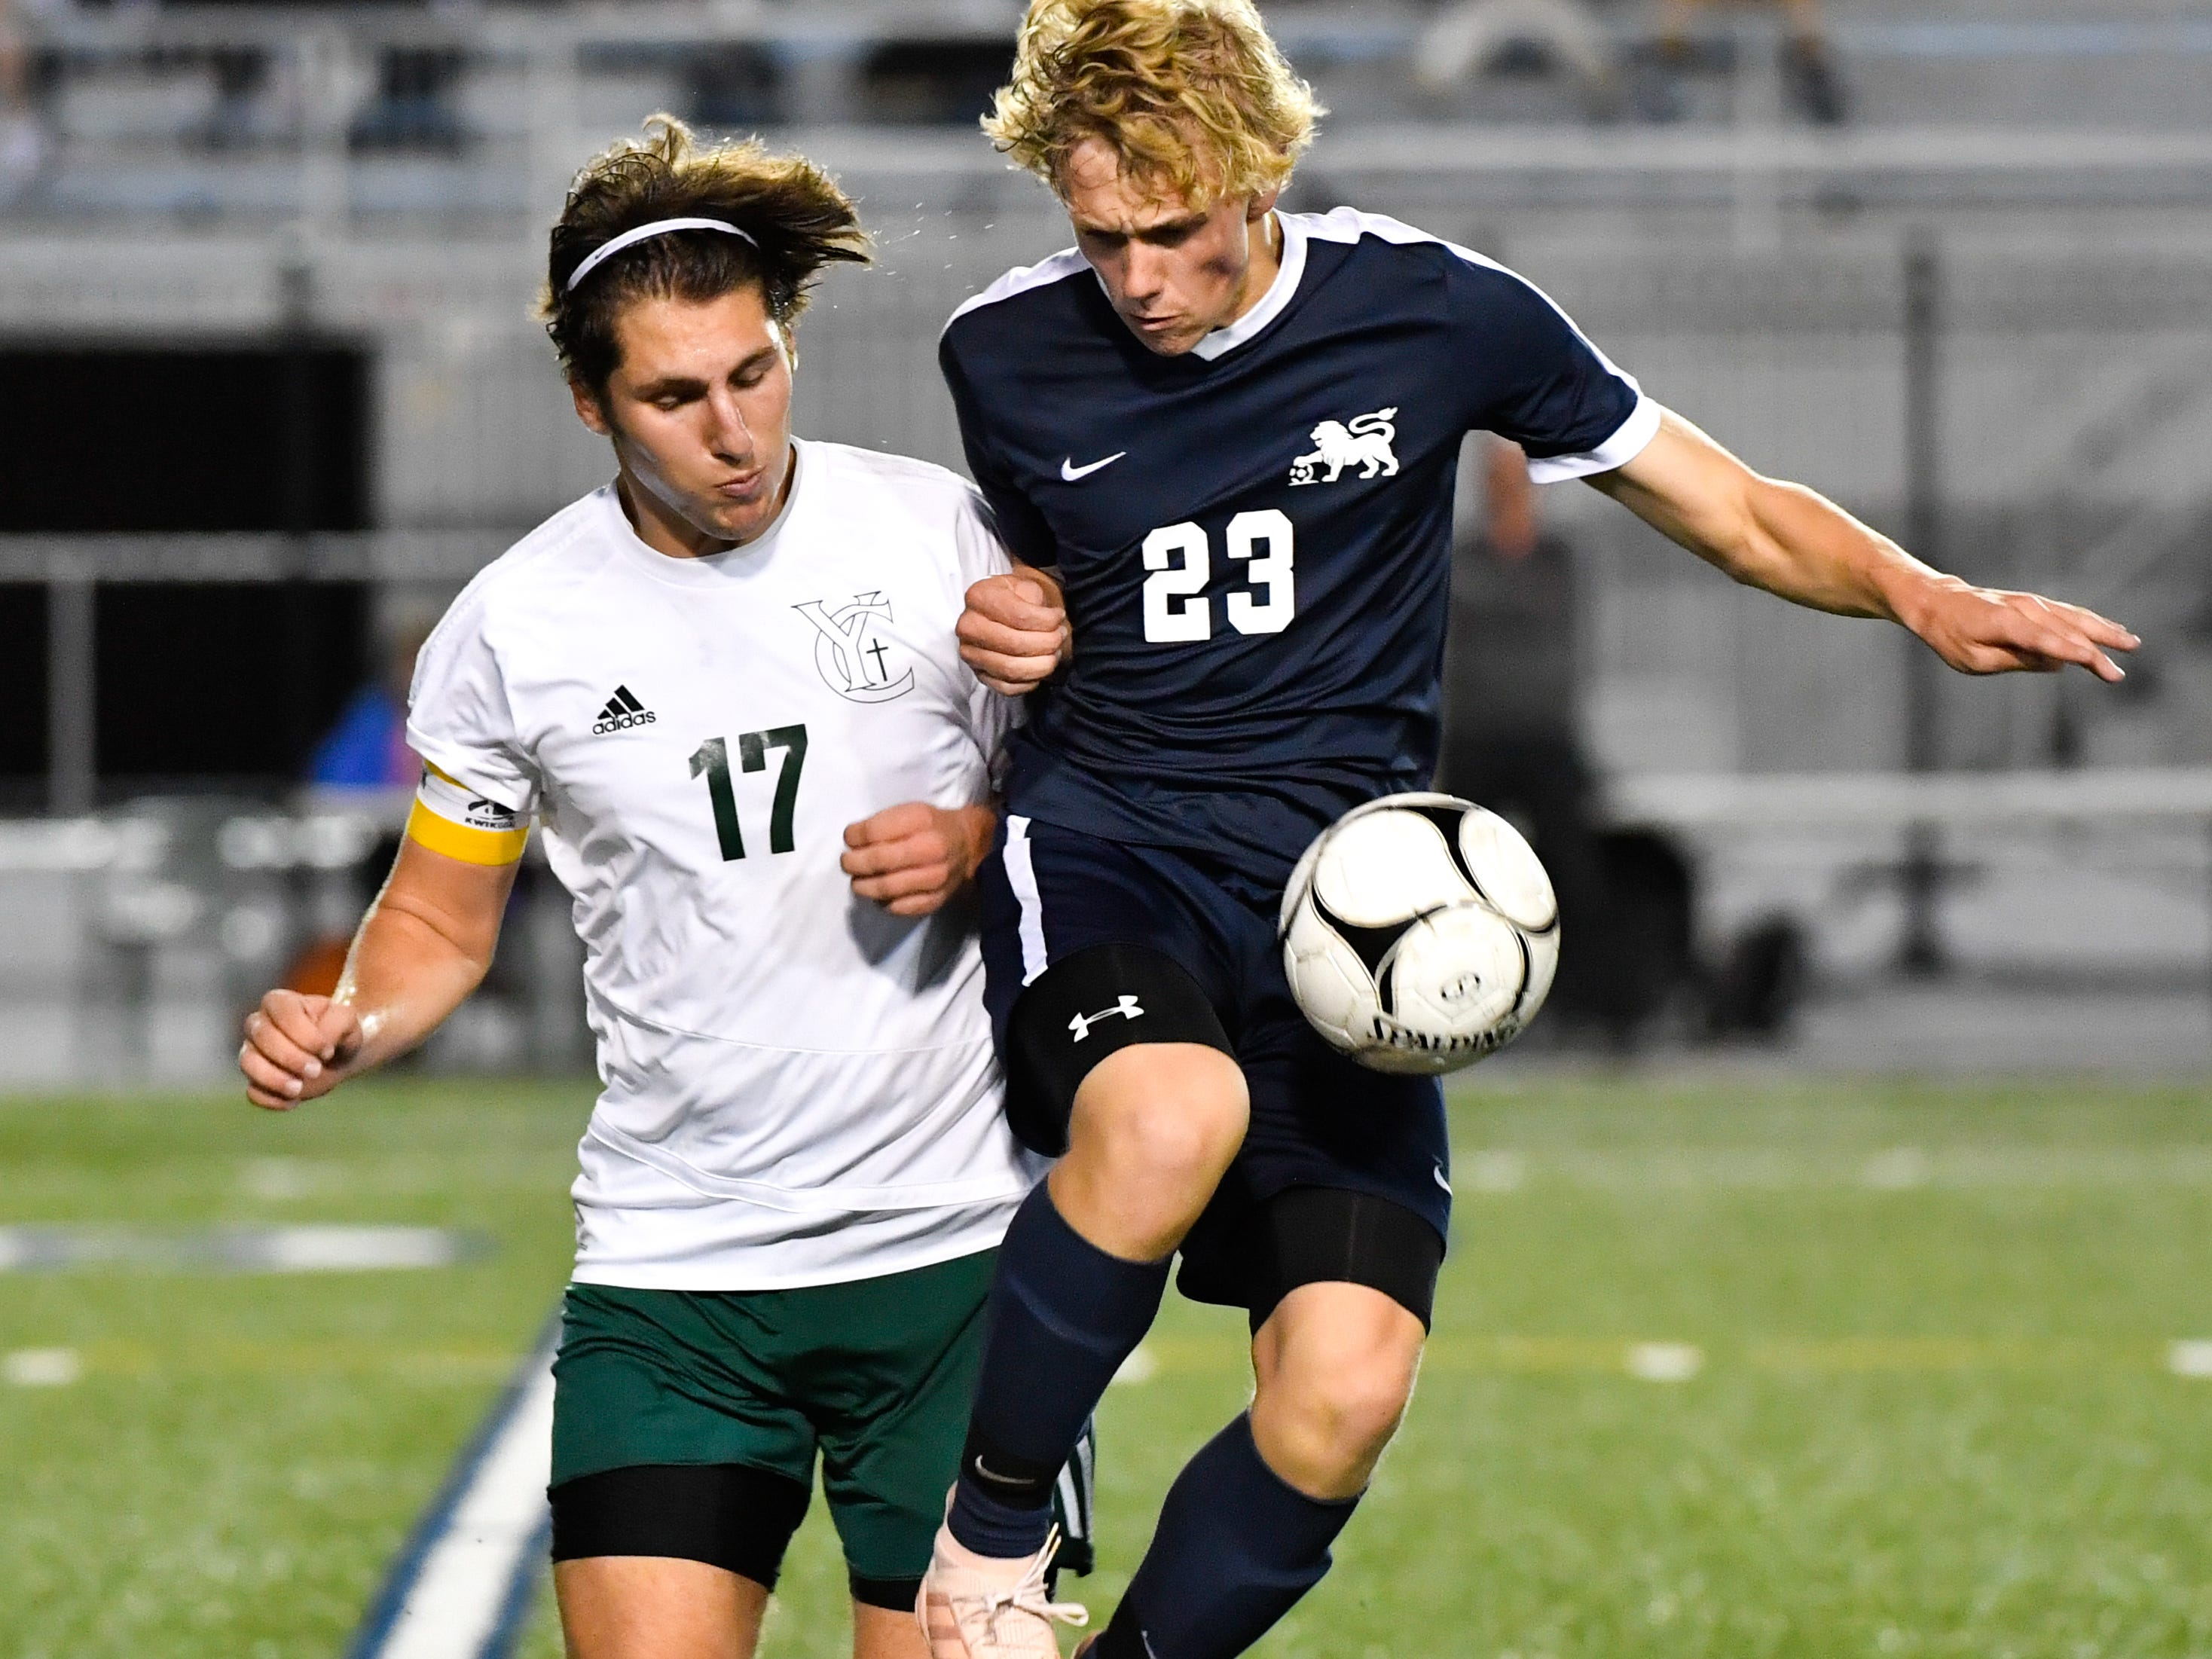 York Catholic's Nick Demarco (17) and Camp Hill's Kyle Pickering (23) fight to get the upper hand during the District 3 Class 1A boys' soccer finals between York Catholic and Camp Hill at Hersheypark Stadium, October 31, 2018. The Lions beat the Fighting Irish 2-0.